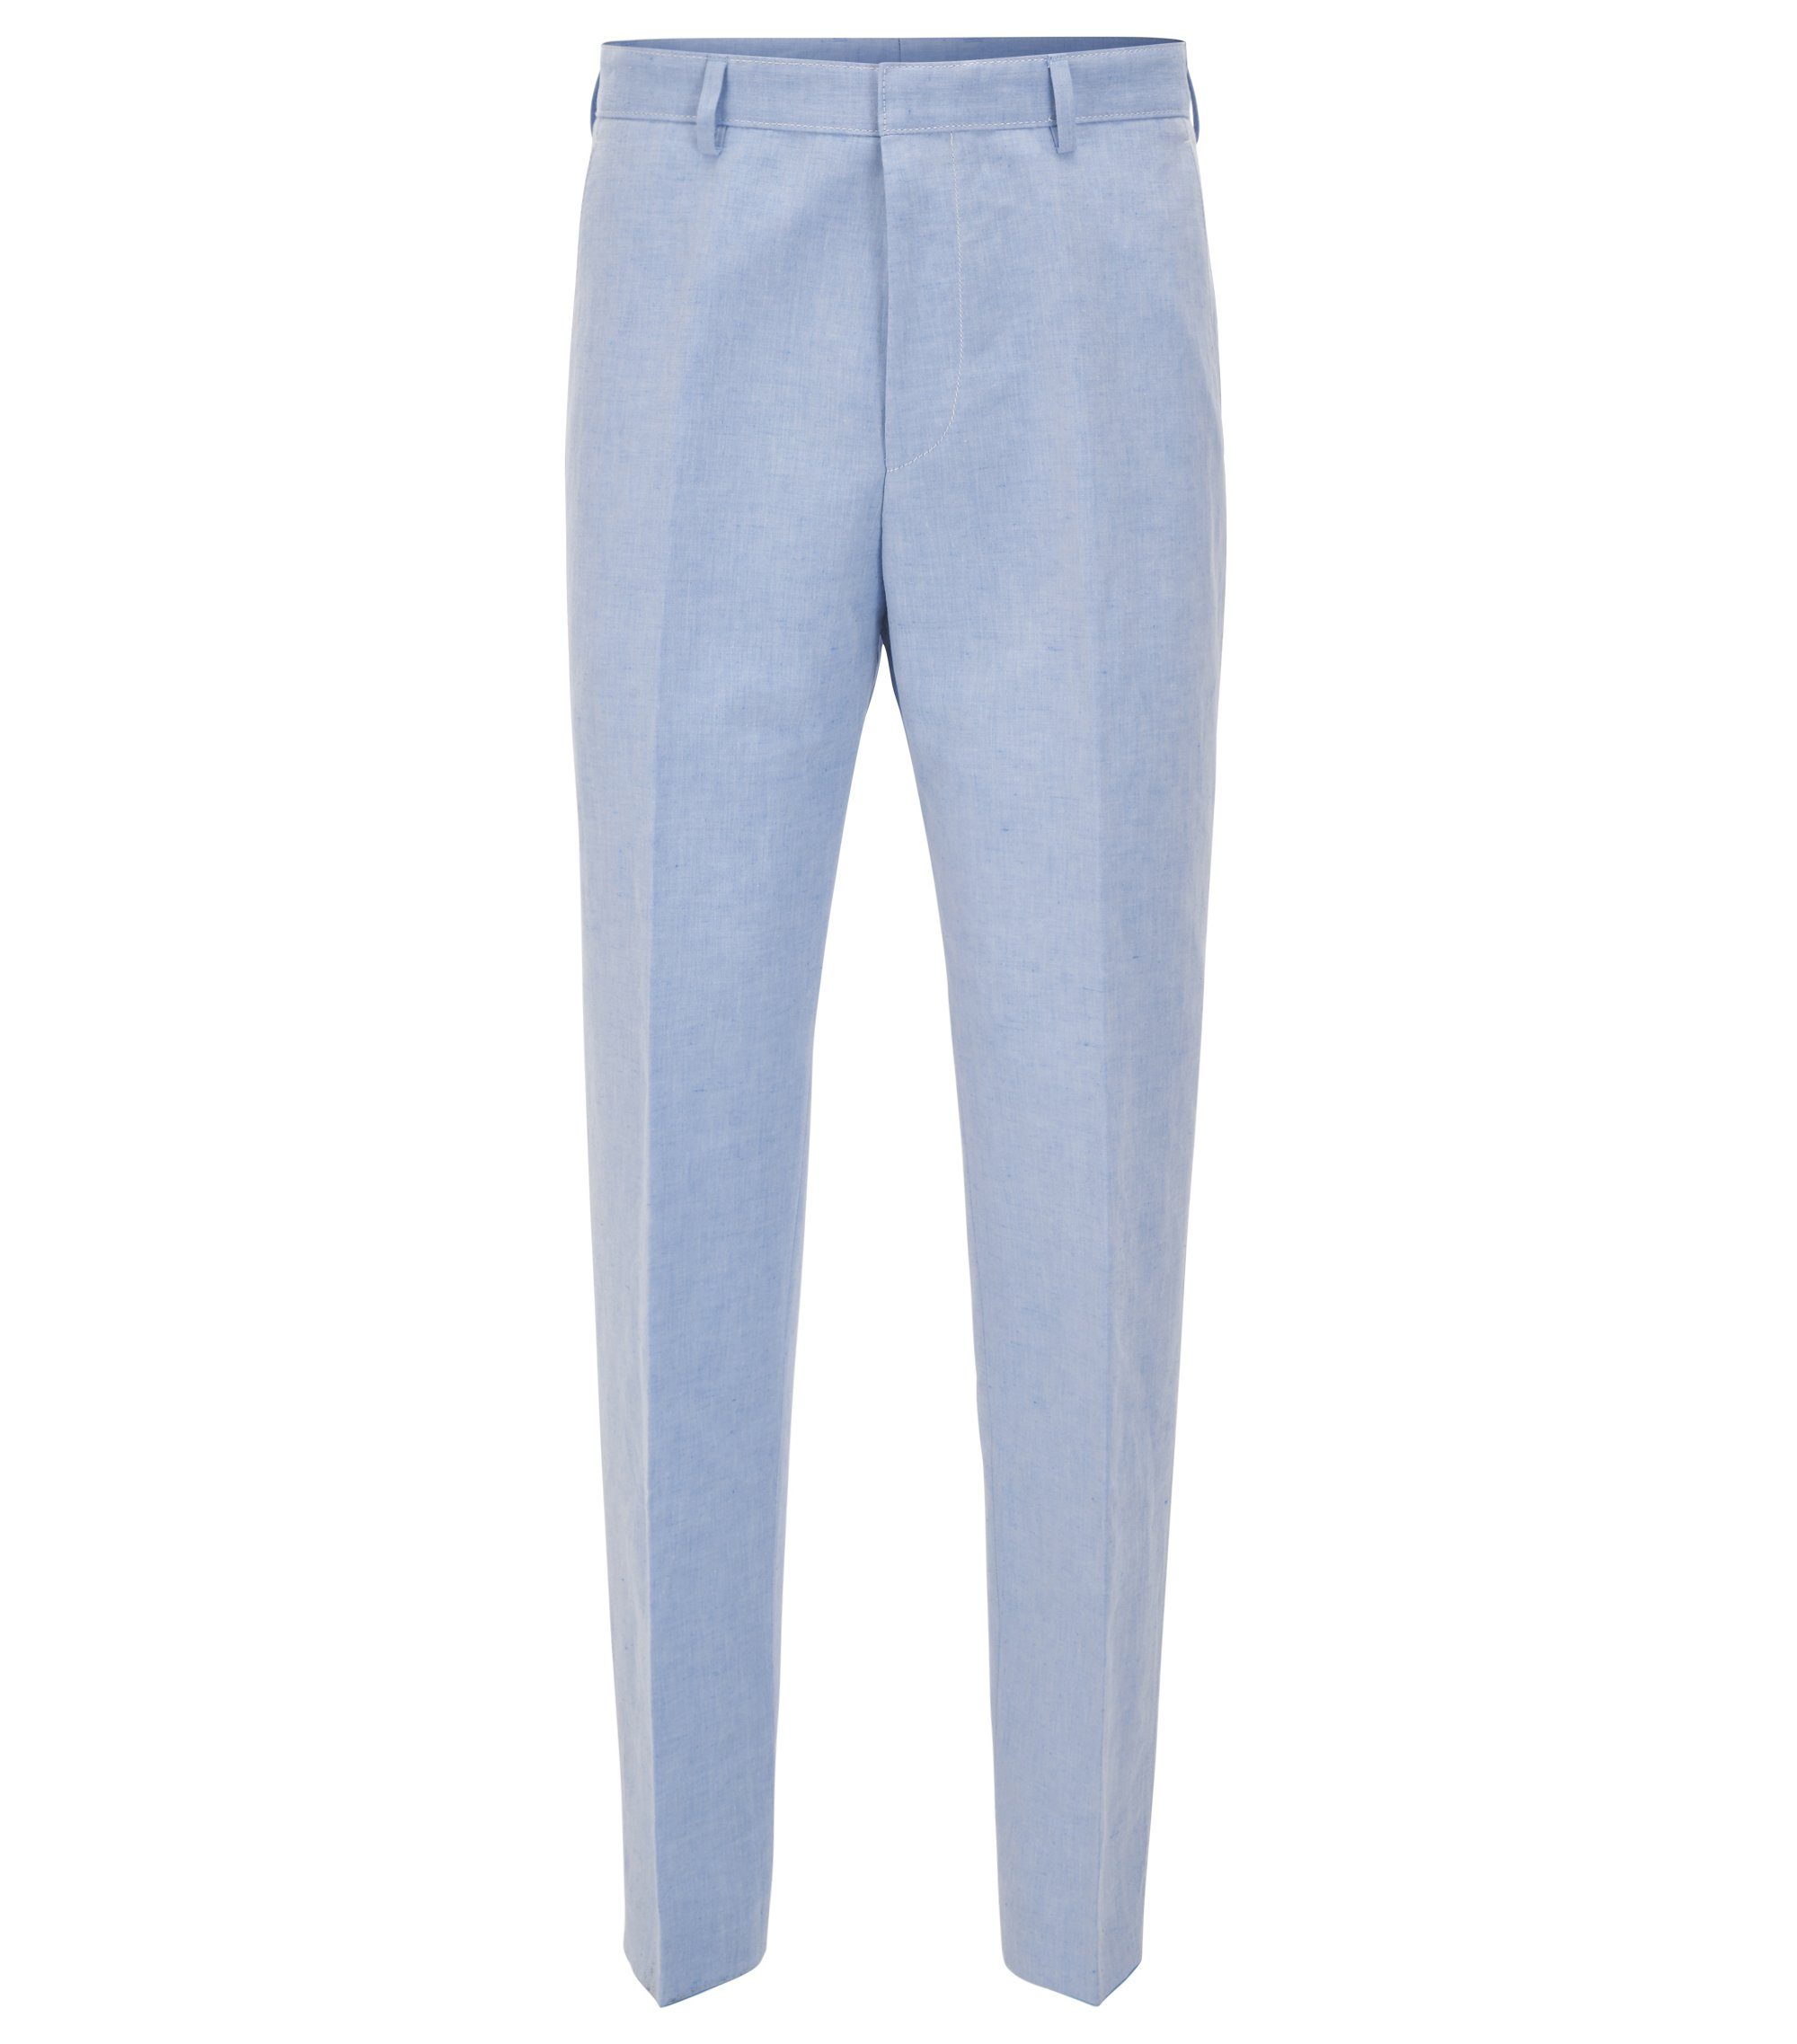 Linen Cotton Dress Pant, Slim Fit | Pirko, Blue